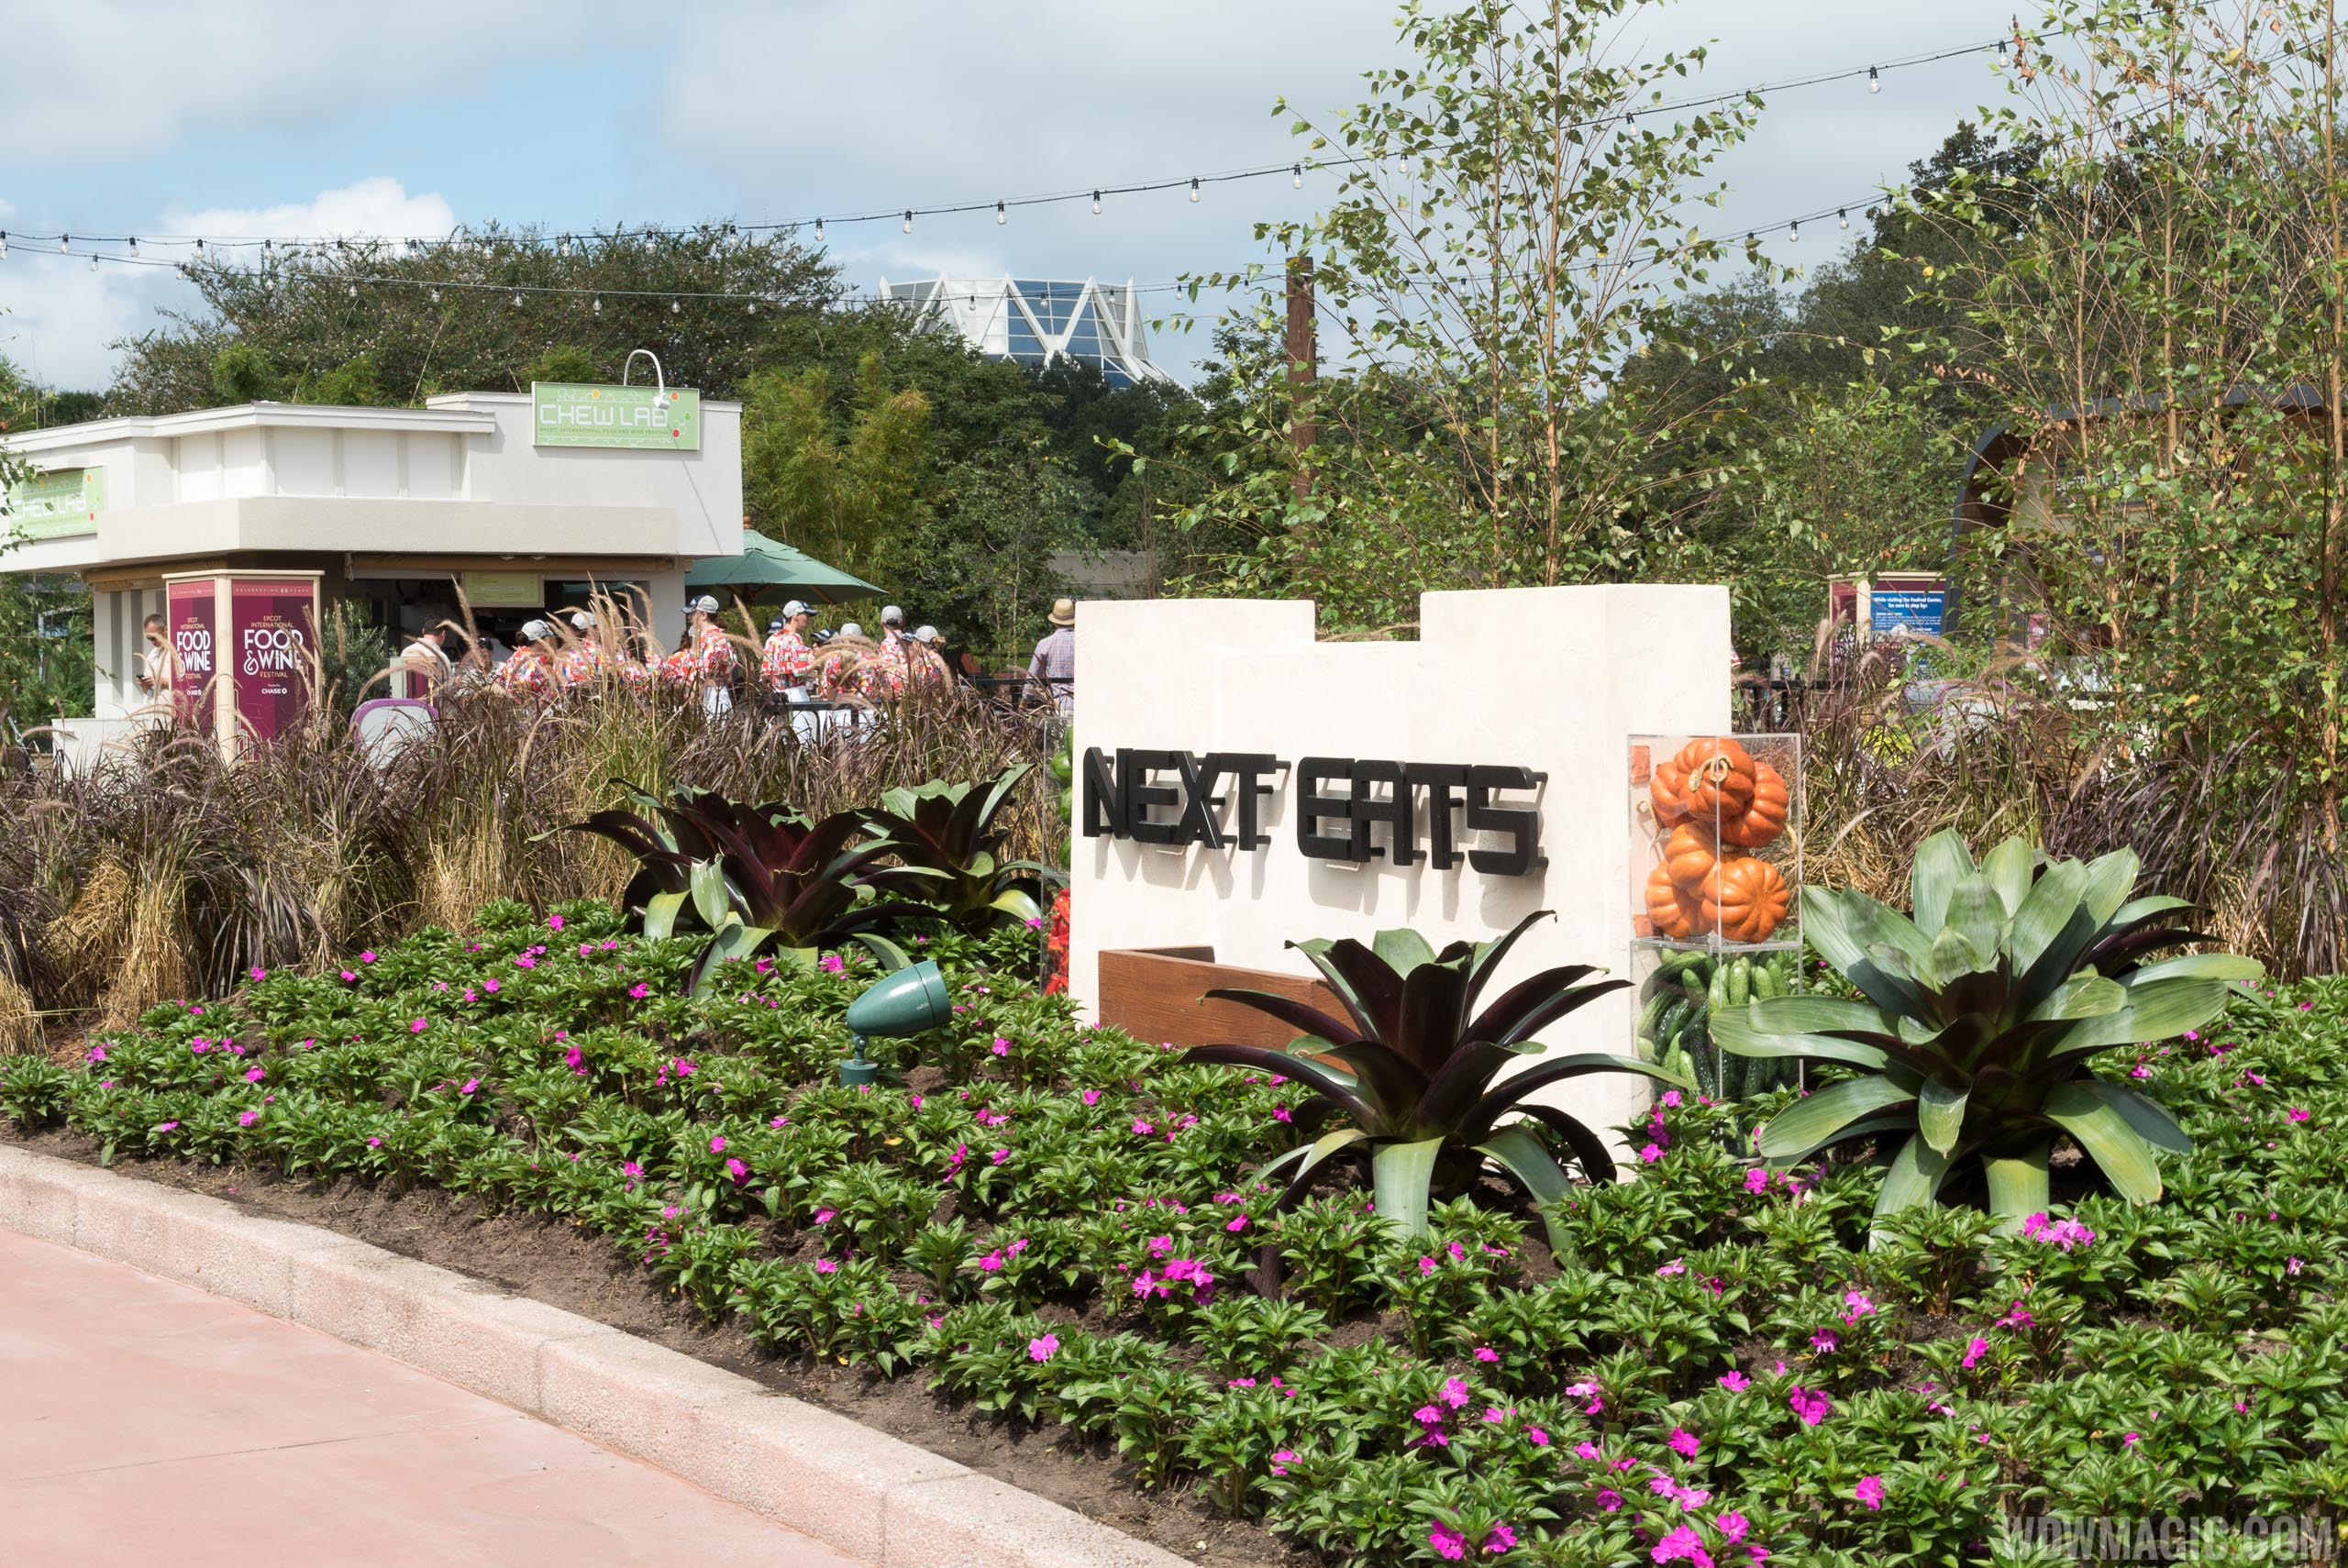 2015 Epcot Food and Wine Festival - Next Eats